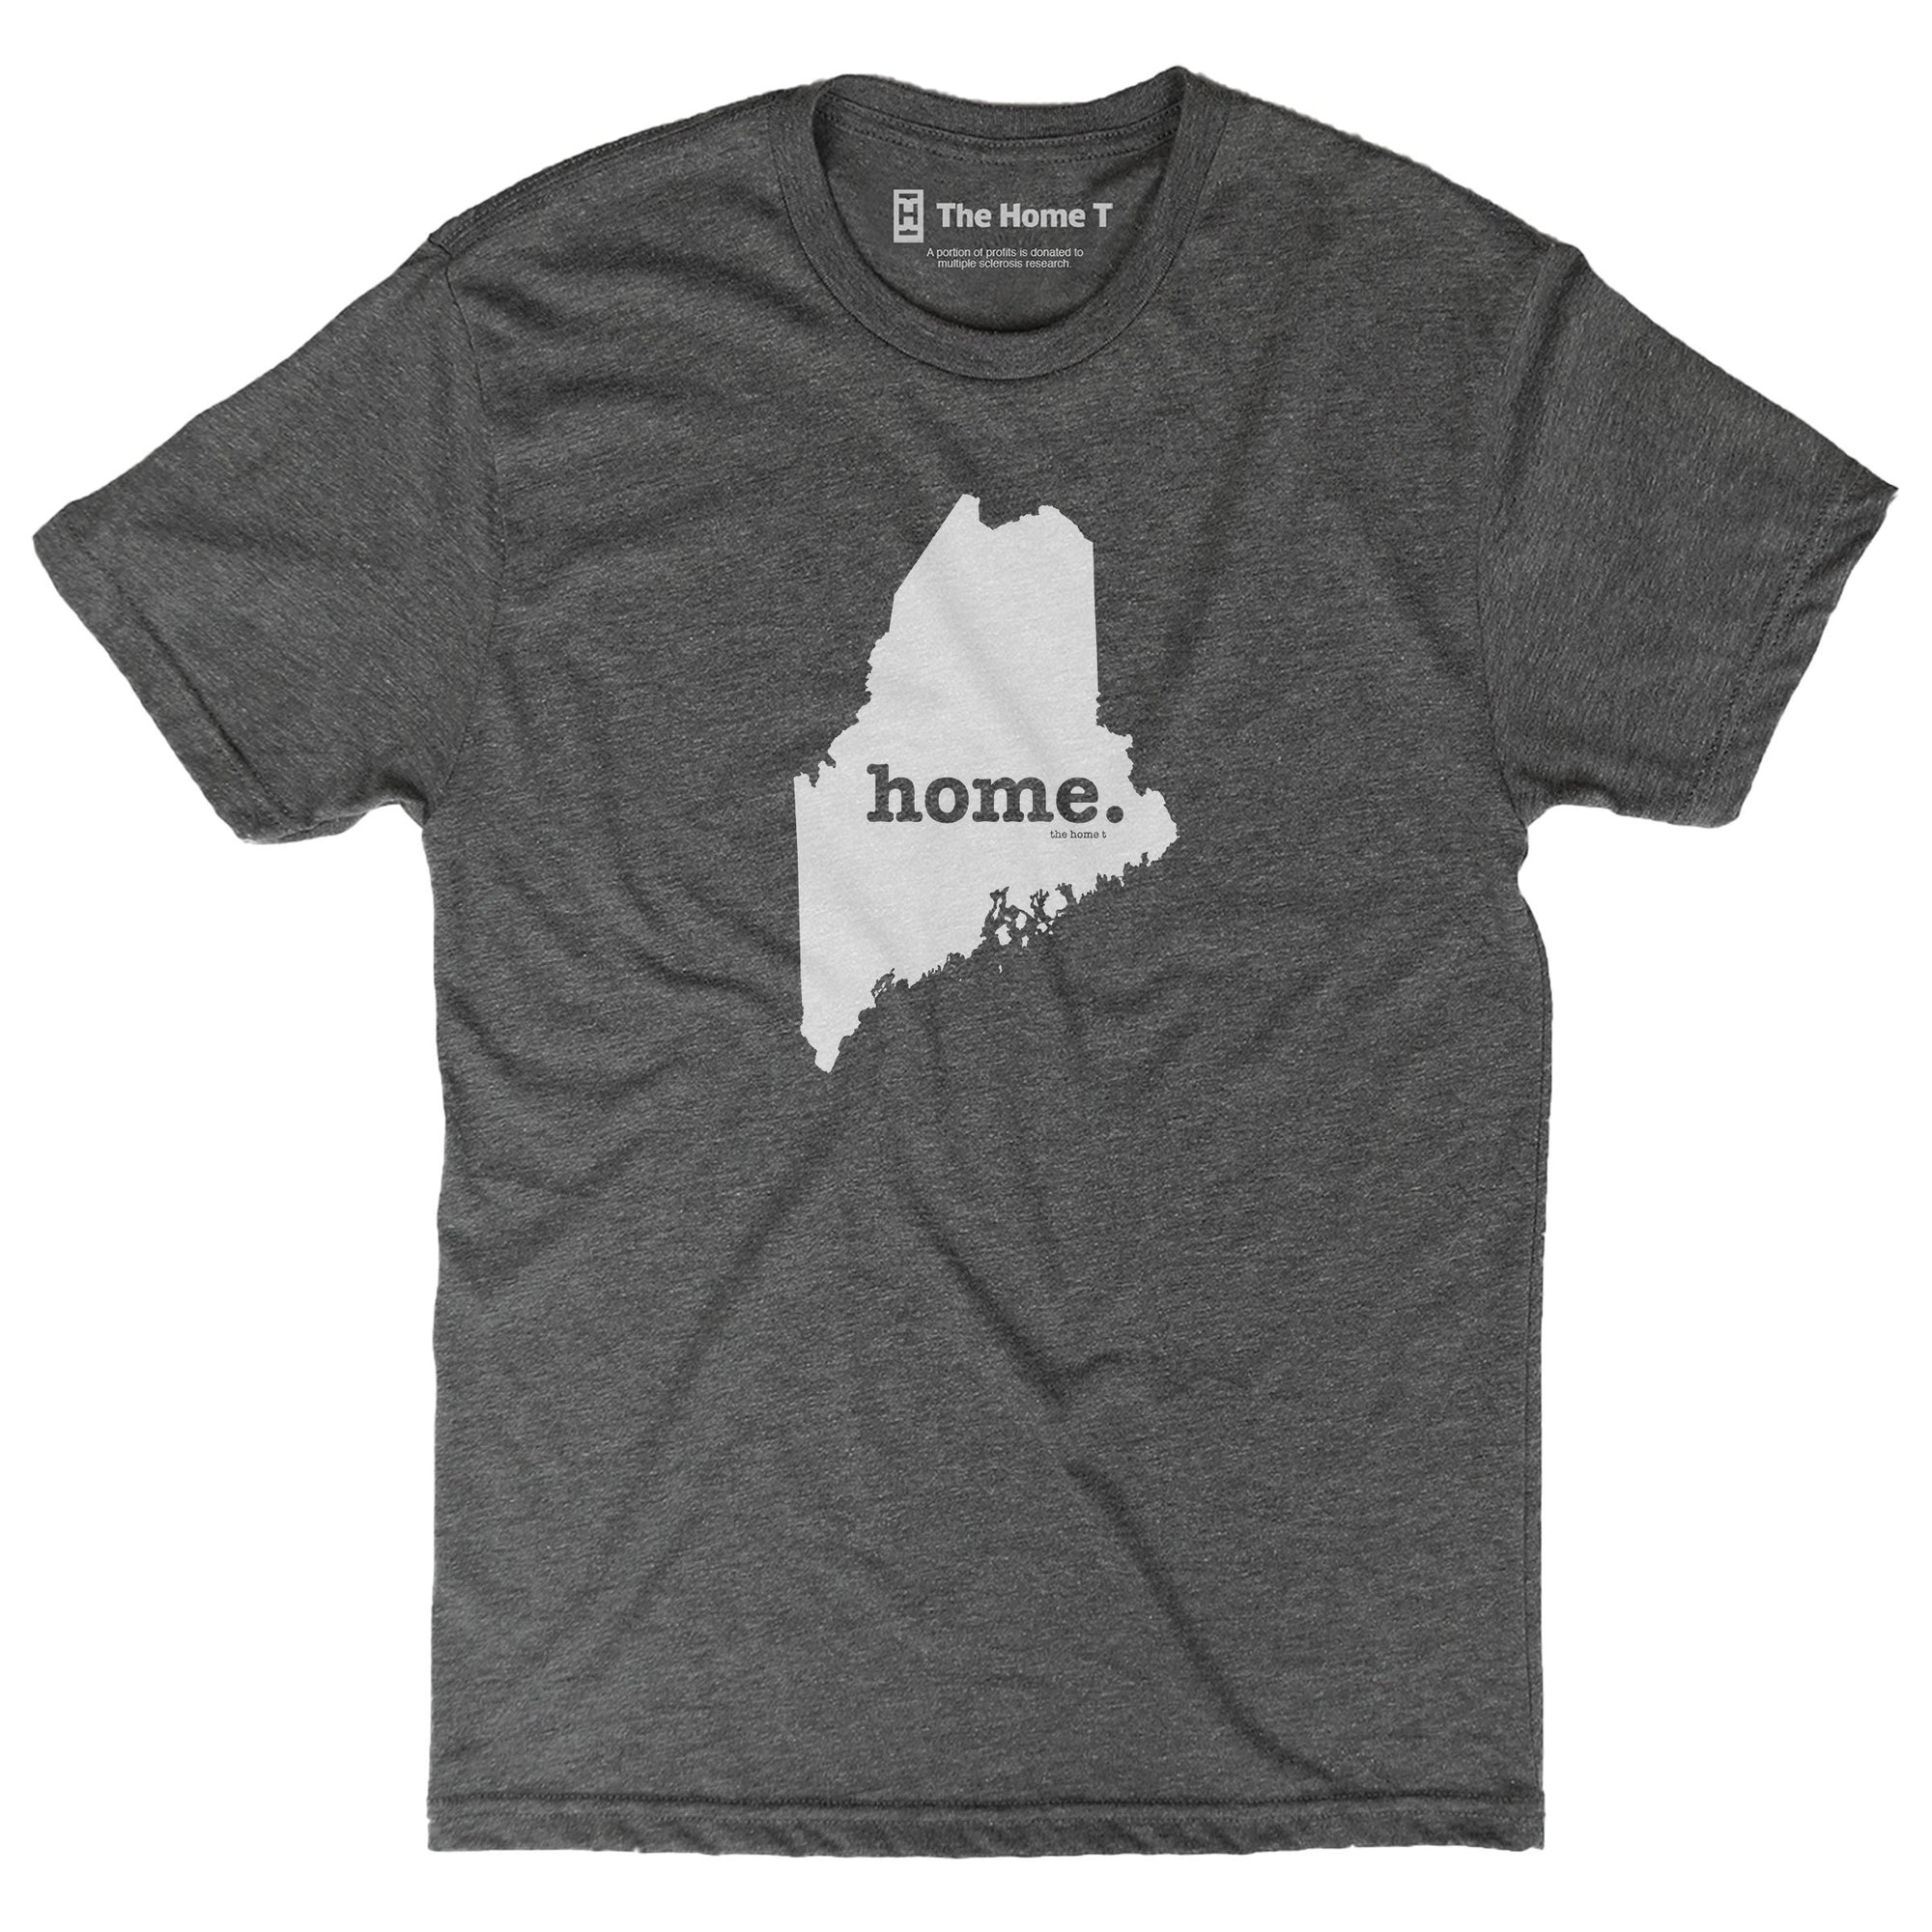 Maine Home T Original Crew The Home T XXL Grey